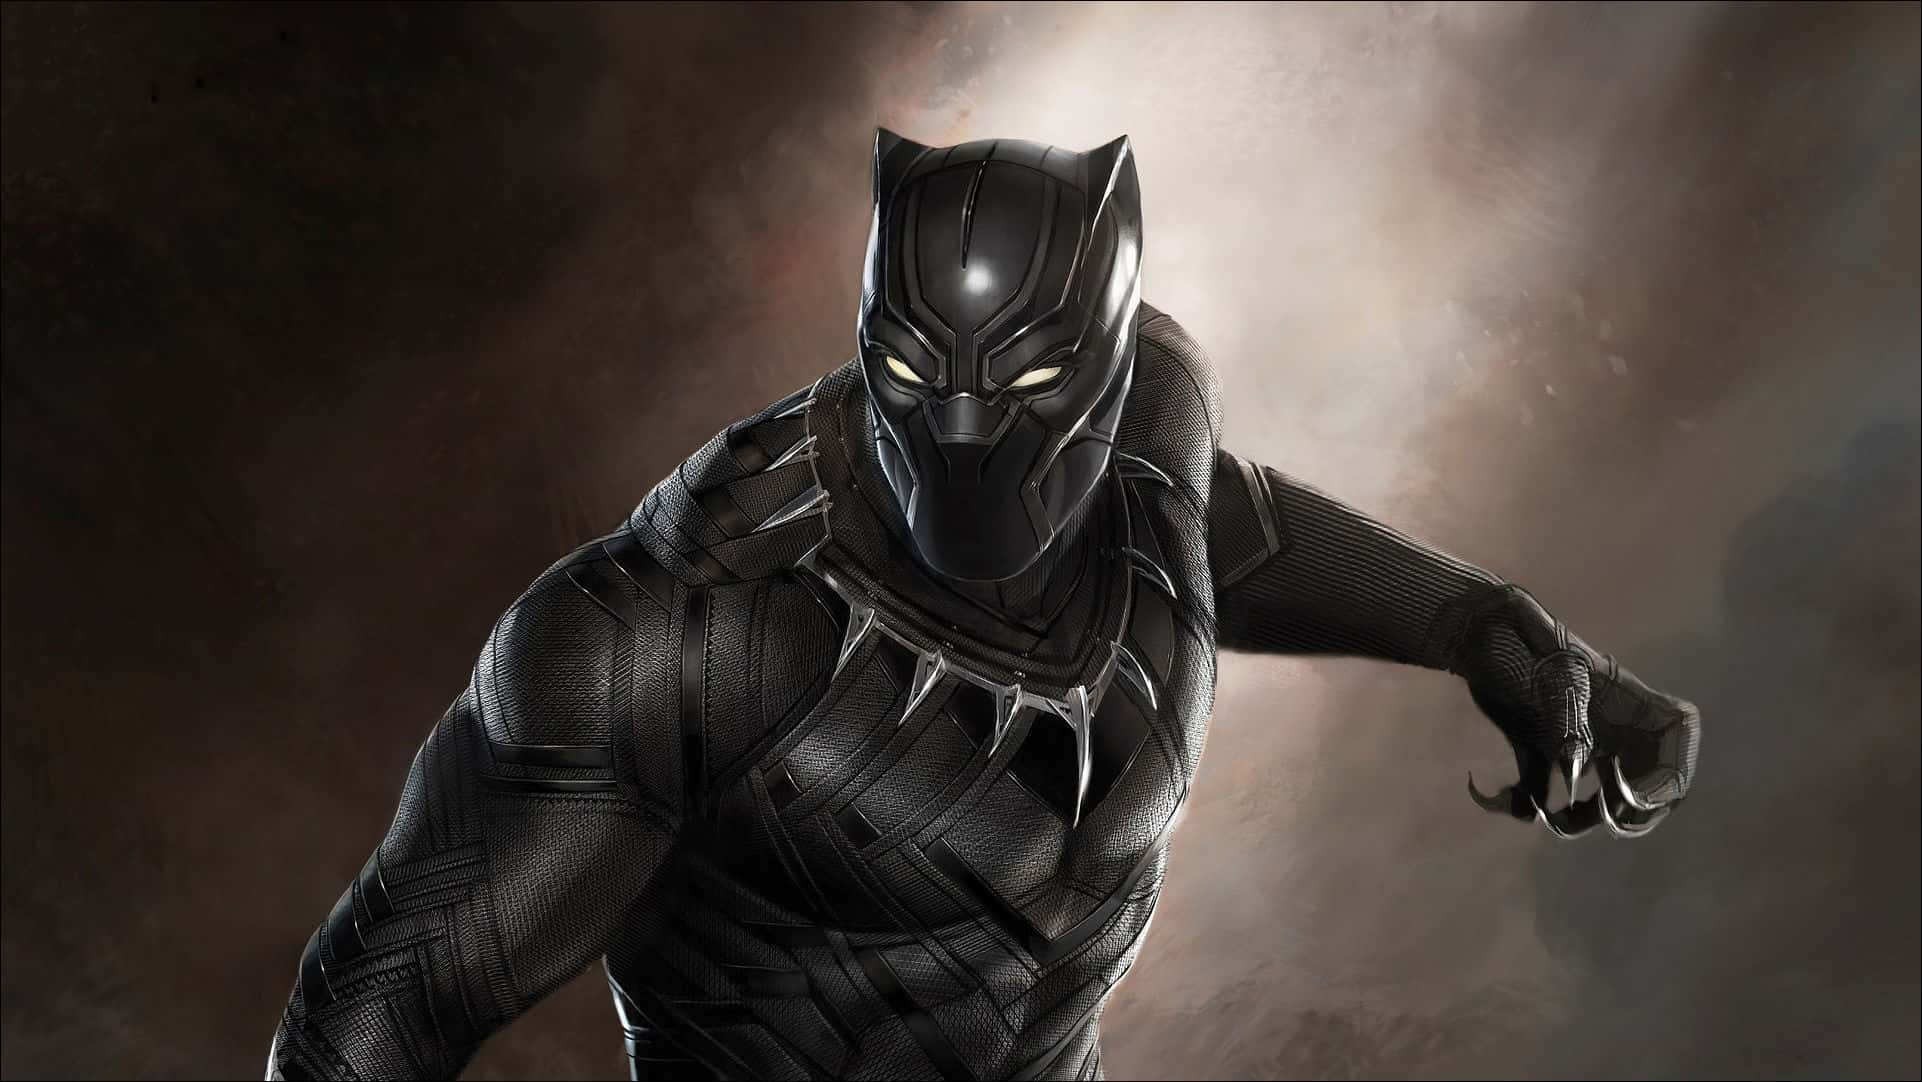 Black Panther 2 Release Date Plot Cast Director And More